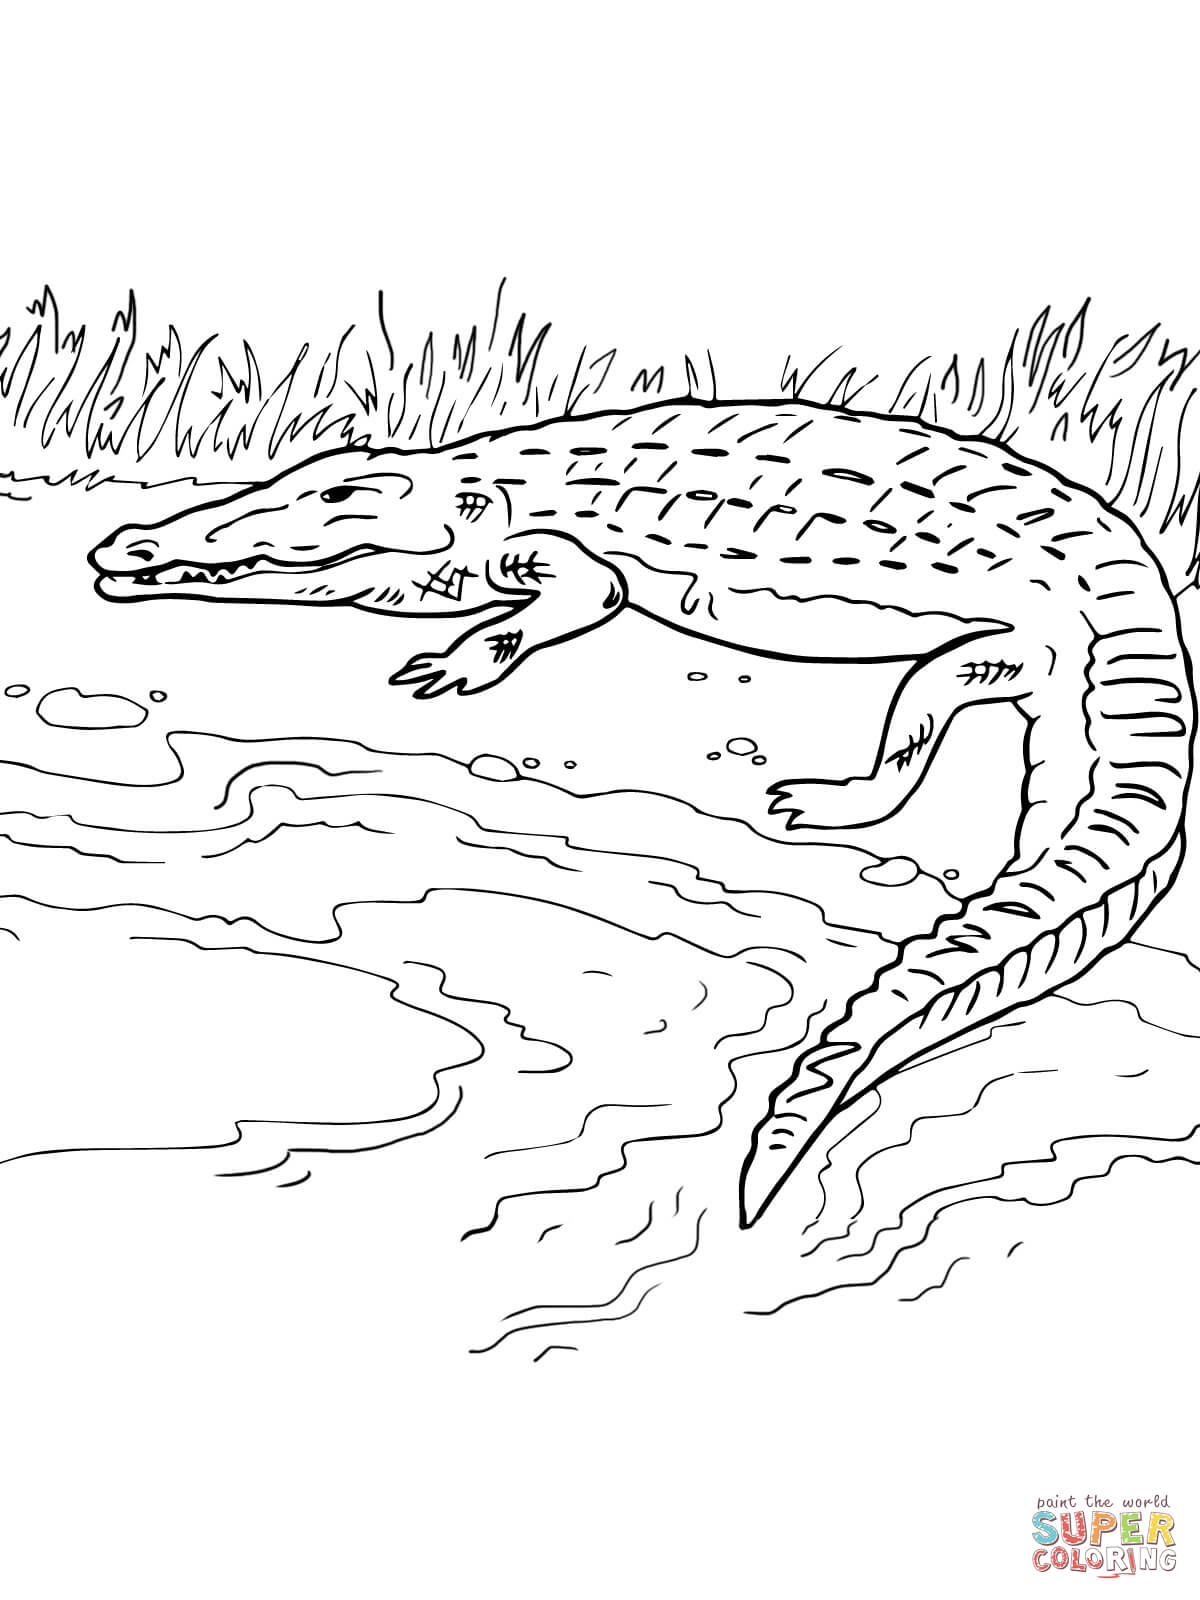 Crocodile On The River Bank Coloring Page